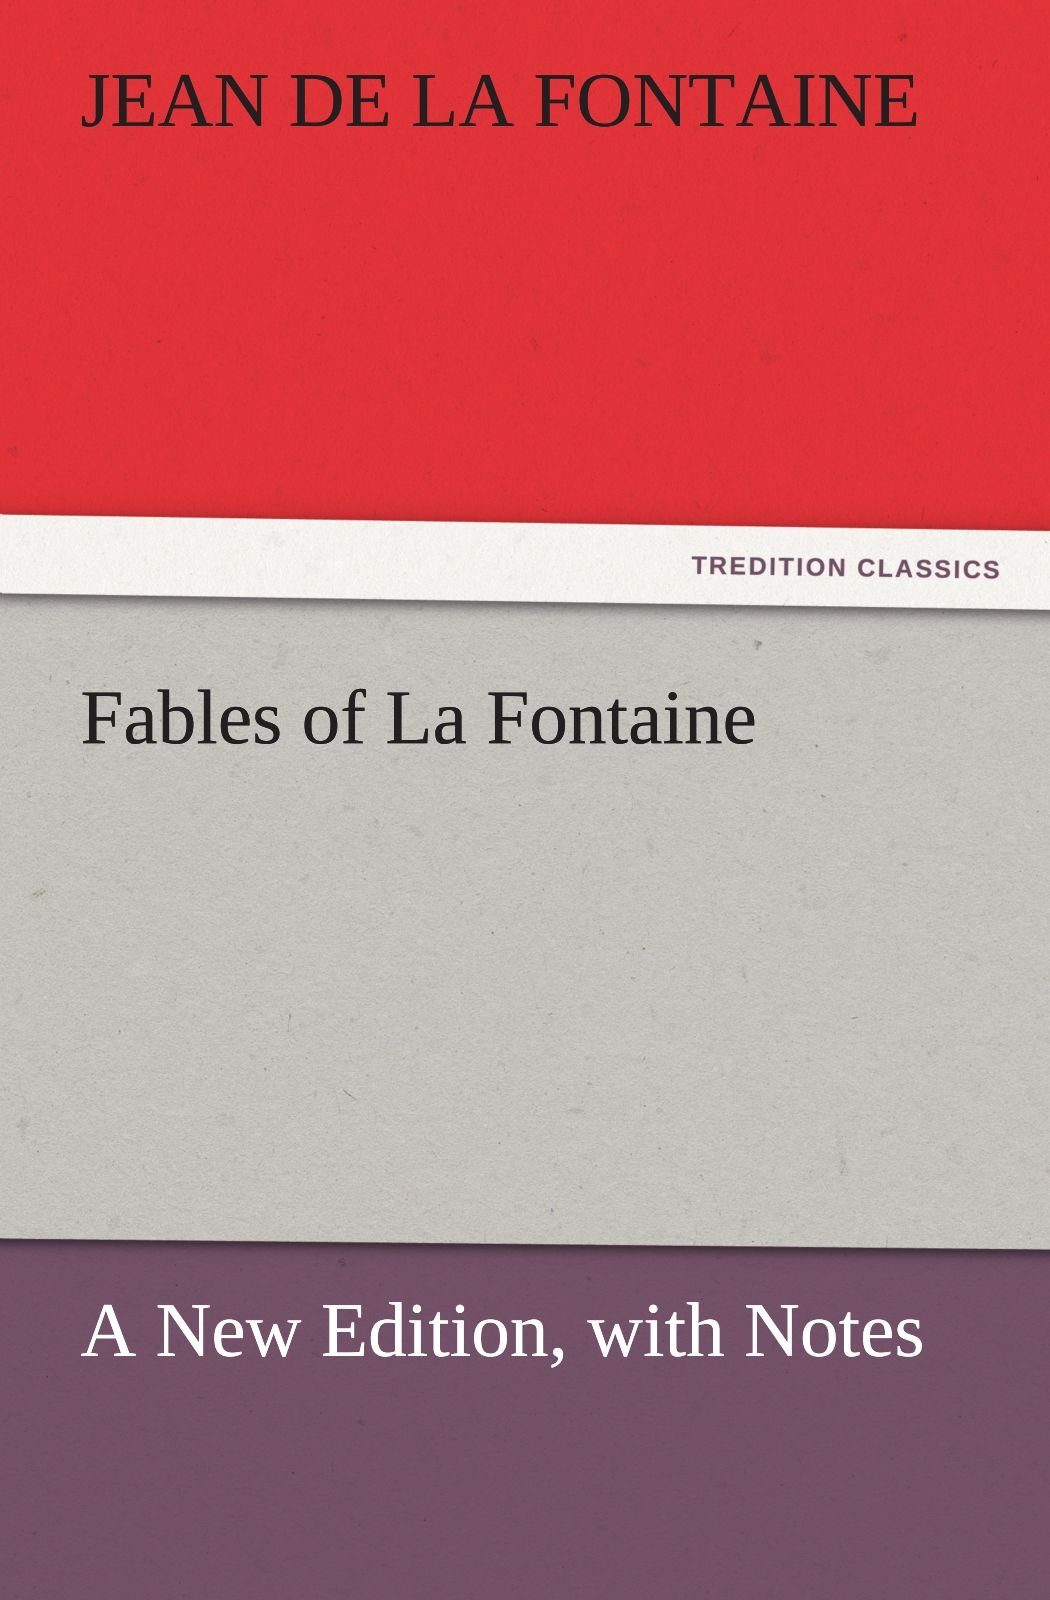 Download Fables of La Fontaine: A New Edition, with Notes (TREDITION CLASSICS) pdf